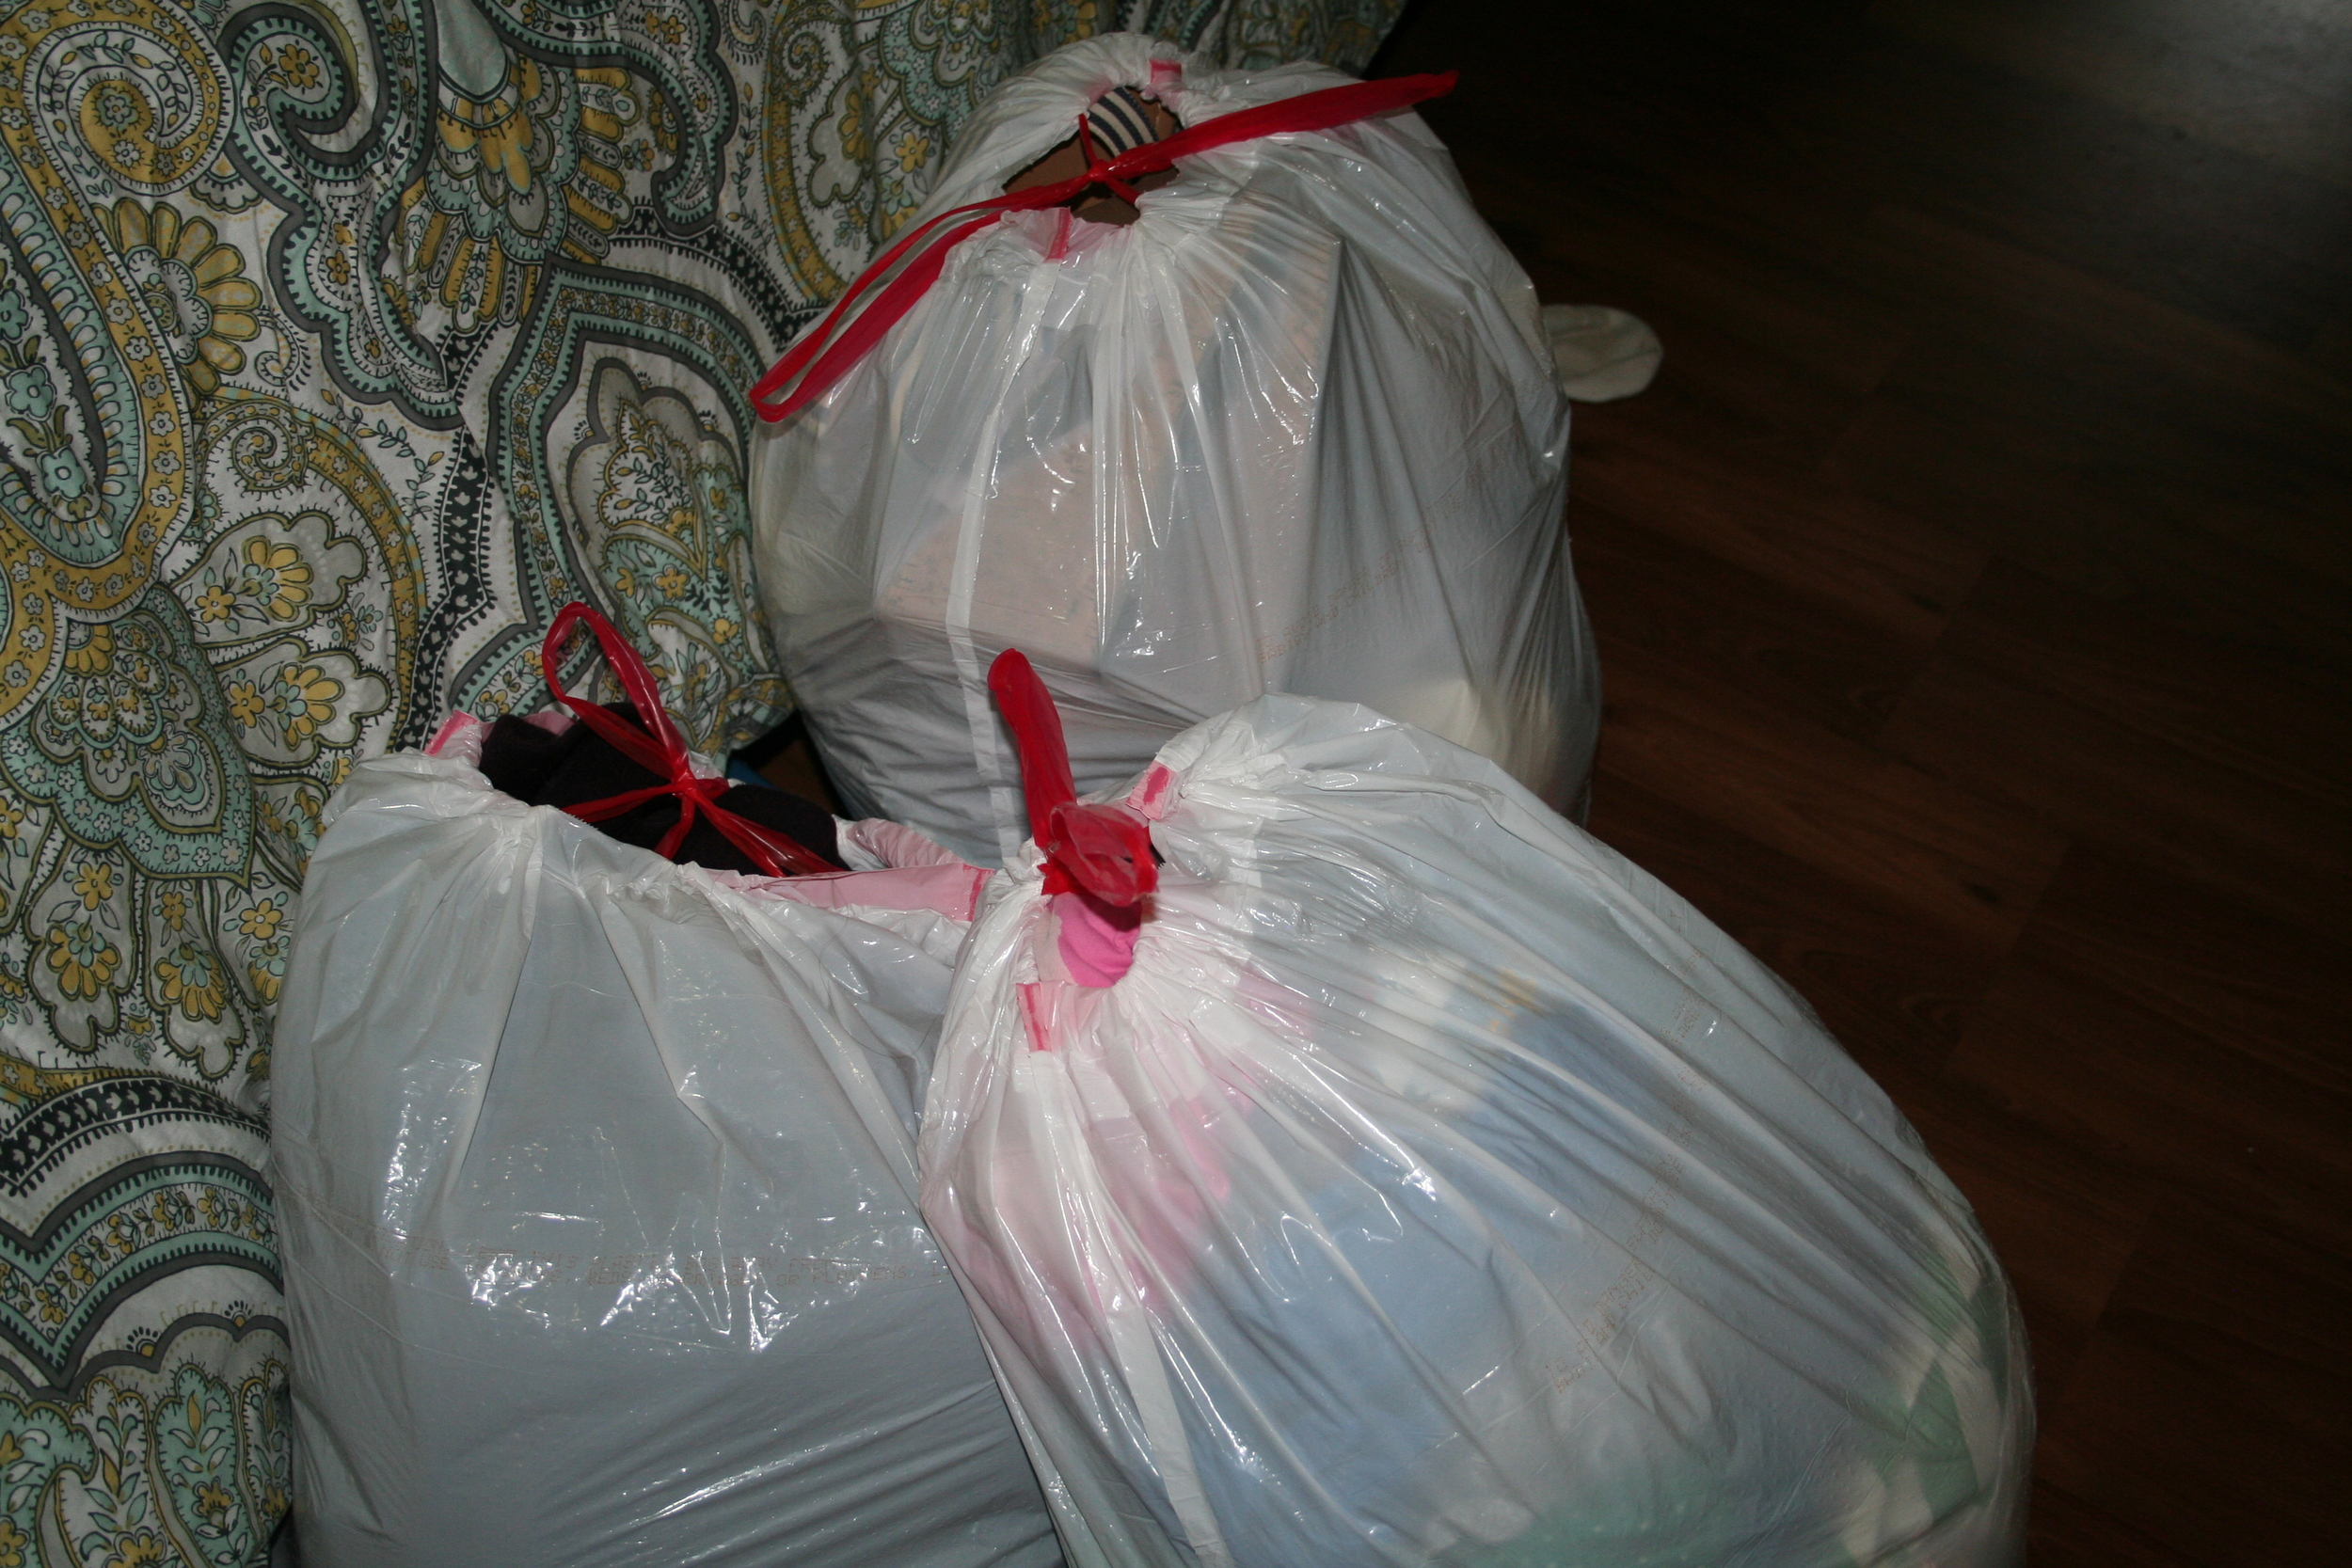 Here is the result of my purge, three garbage bags full of clothes and shoes that are going to a thrift store.